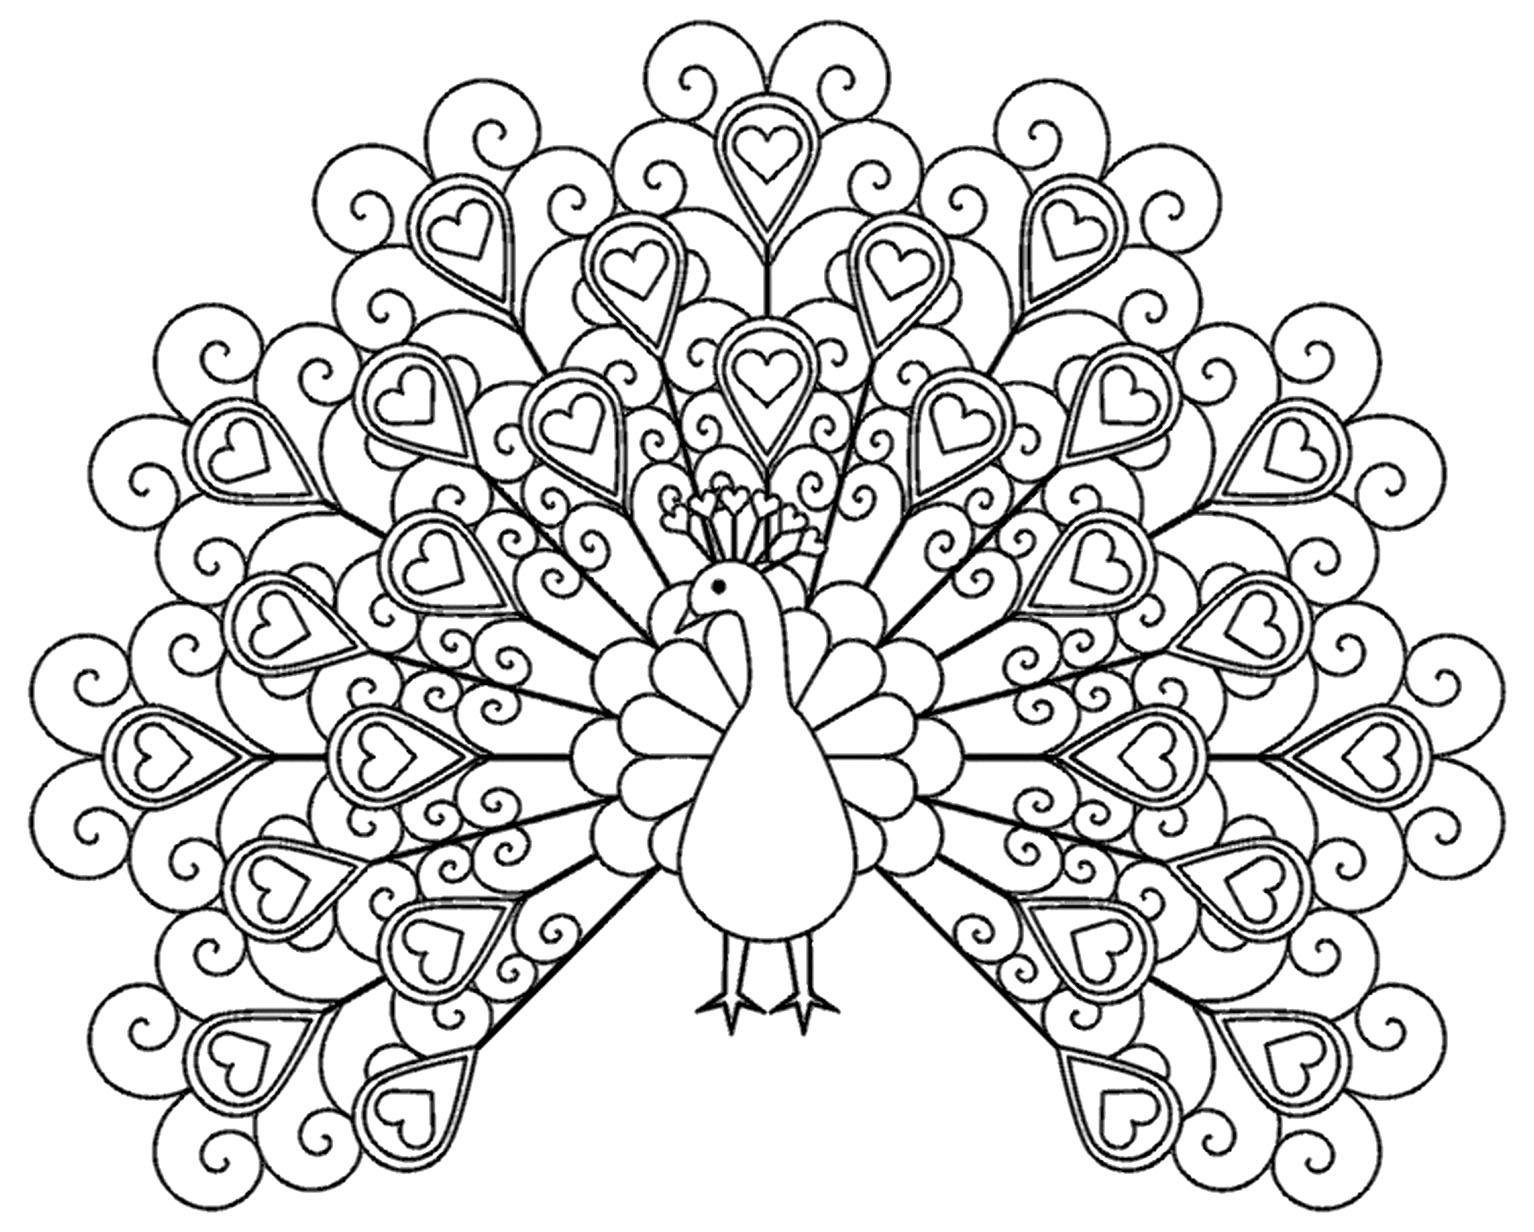 easy printable peacock coloring pages free printable peacock coloring pages for kids peacock easy printable pages coloring